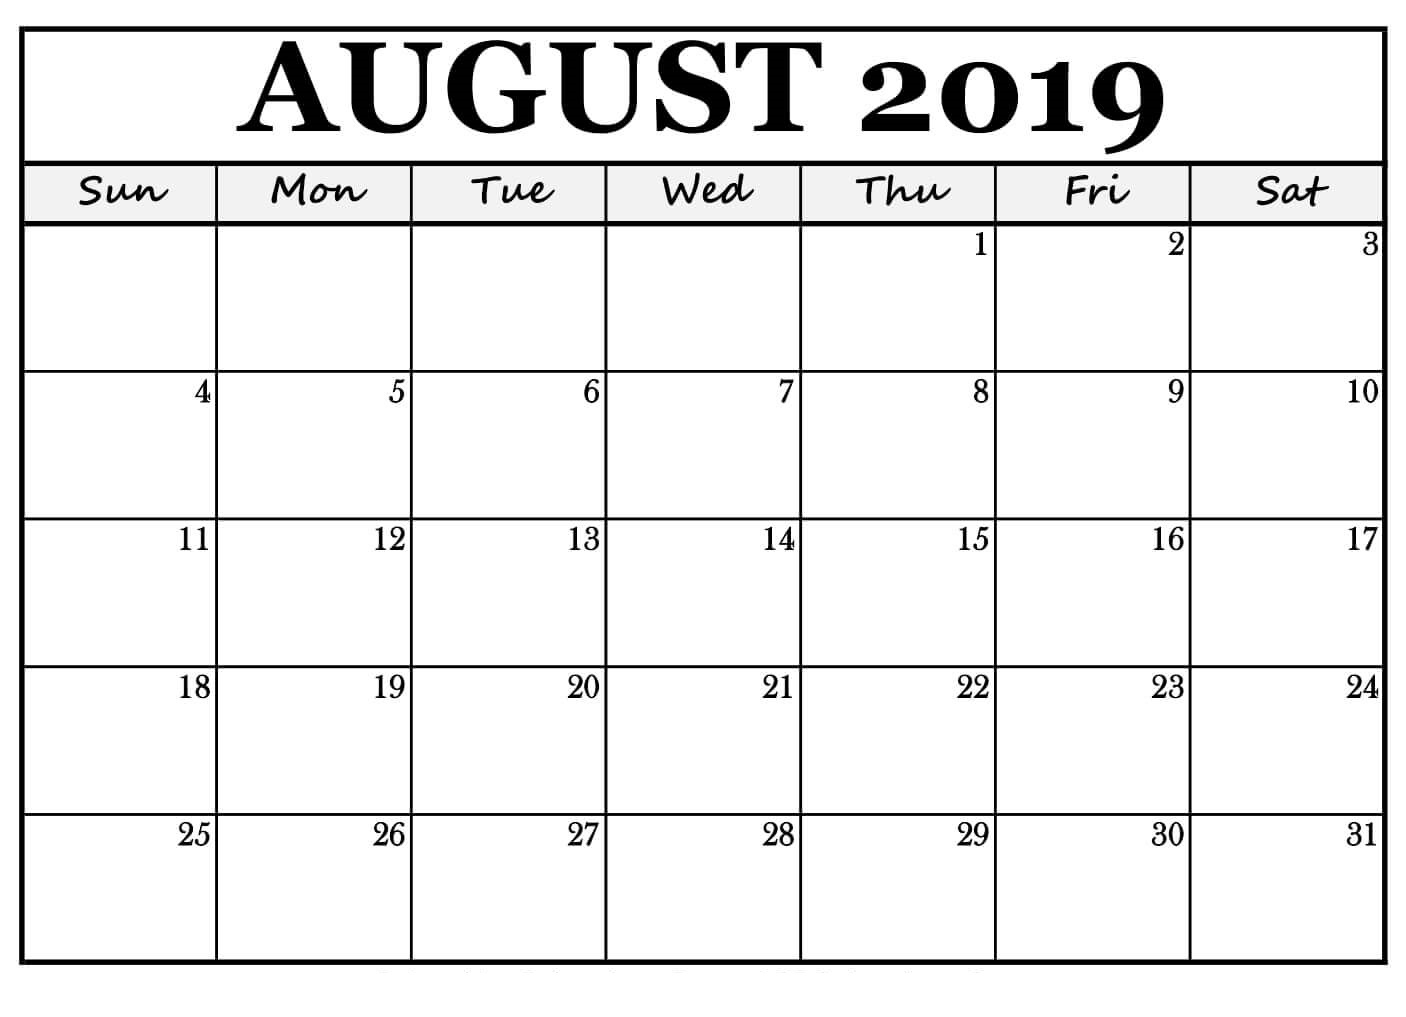 Free Printable August 2019 Calendar Landscape - Free Printable with regard to August Calendar Template To Type In